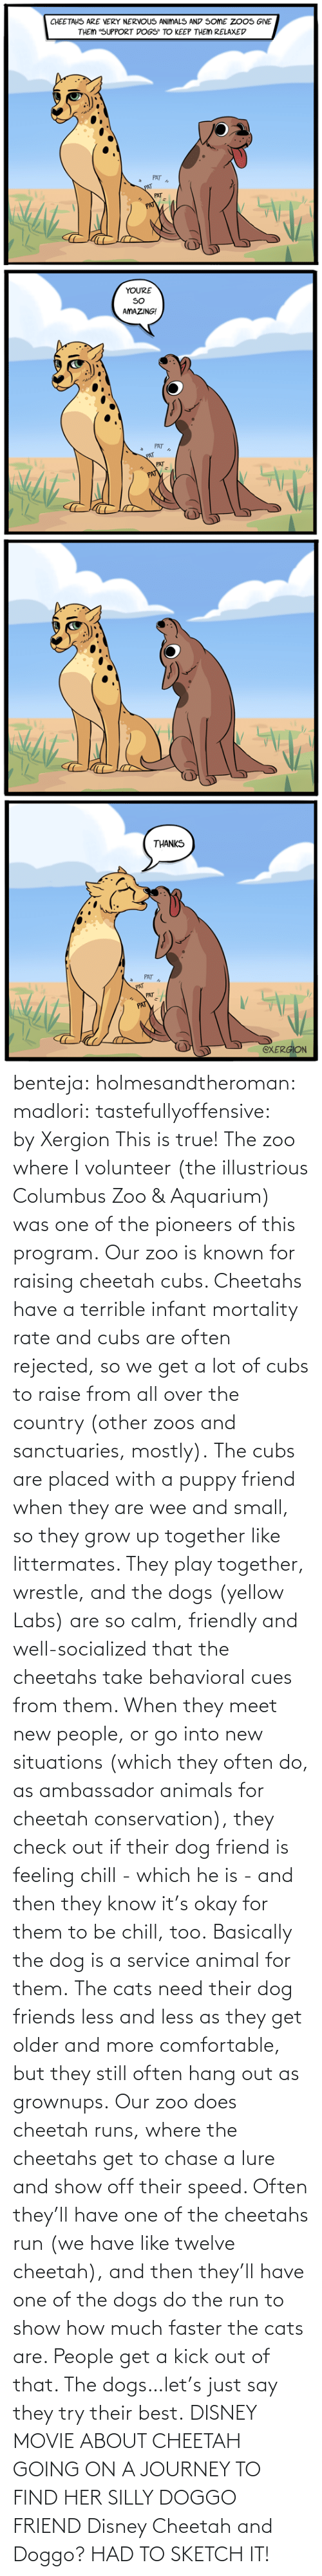 speed: benteja:  holmesandtheroman:  madlori:  tastefullyoffensive: by Xergion This is true! The zoo where I volunteer (the illustrious Columbus Zoo & Aquarium) was one of the pioneers of this program. Our zoo is known for raising cheetah cubs. Cheetahs have a terrible infant mortality rate and cubs are often rejected, so we get a lot of cubs to raise from all over the country (other zoos and sanctuaries, mostly). The cubs are placed with a puppy friend when they are wee and small, so they grow up together like littermates. They play together, wrestle, and the dogs (yellow Labs) are so calm, friendly and well-socialized that the cheetahs take behavioral cues from them. When they meet new people, or go into new situations (which they often do, as ambassador animals for cheetah conservation), they check out if their dog friend is feeling chill - which he is - and then they know it's okay for them to be chill, too. Basically the dog is a service animal for them. The cats need their dog friends less and less as they get older and more comfortable, but they still often hang out as grownups. Our zoo does cheetah runs, where the cheetahs get to chase a lure and show off their speed. Often they'll have one of the cheetahs run (we have like twelve cheetah), and then they'll have one of the dogs do the run to show how much faster the cats are. People get a kick out of that. The dogs…let's just say they try their best.   DISNEY MOVIE ABOUT CHEETAH GOING ON A JOURNEY TO FIND HER SILLY DOGGO FRIEND  Disney Cheetah and Doggo? HAD TO SKETCH IT!